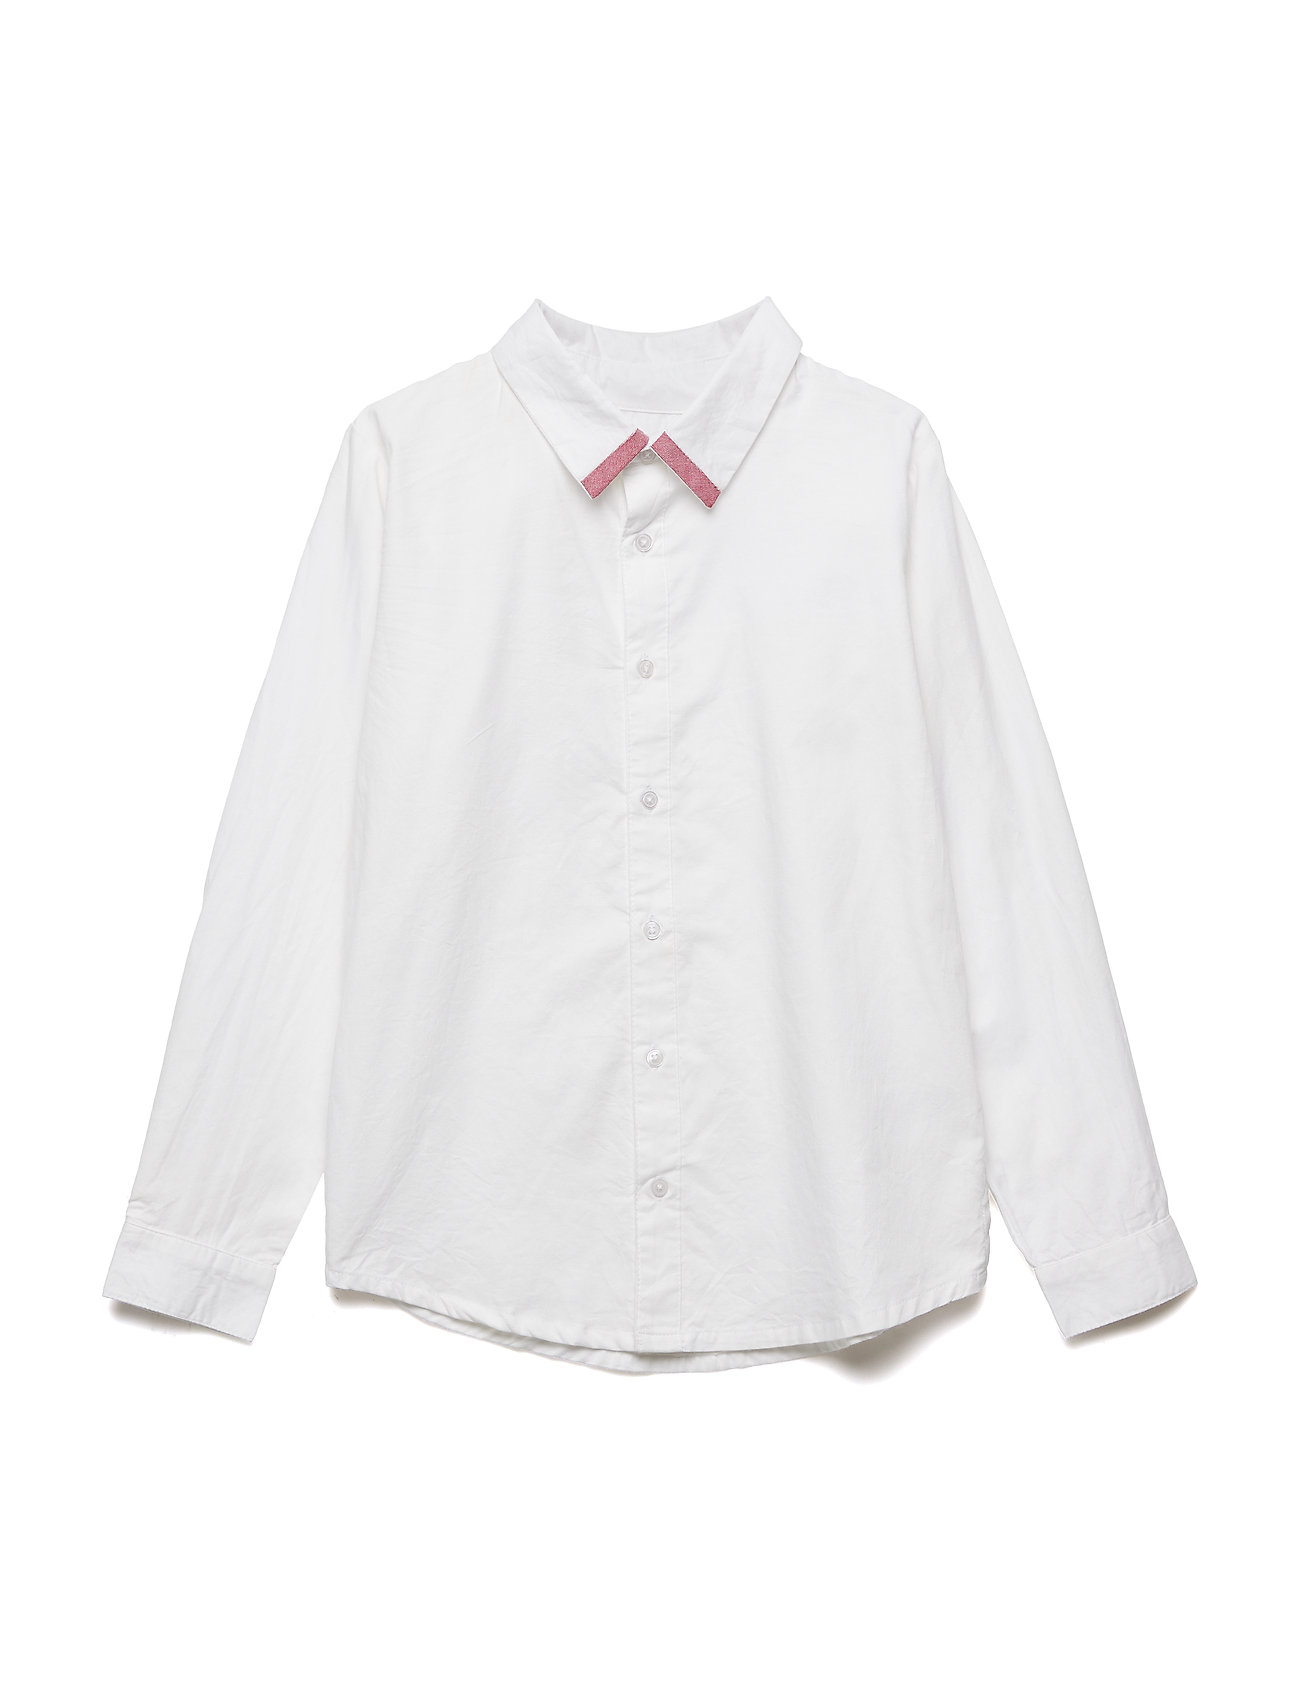 Mini A Ture Mexi Shirt, MK - WHITE